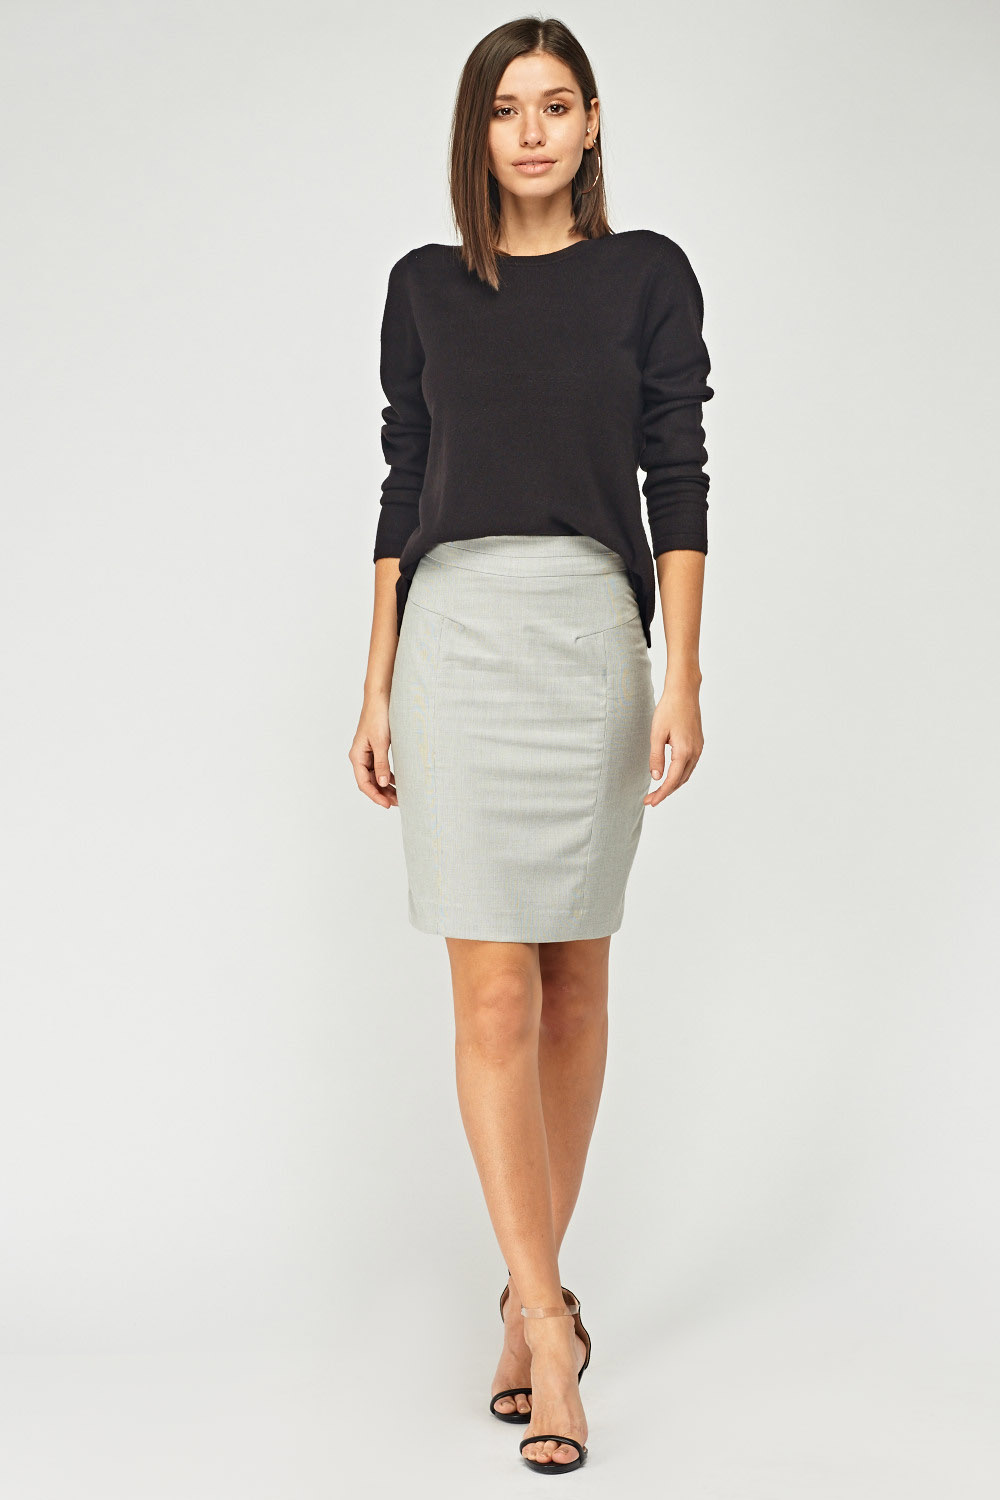 17da7b4d2 Grey Formal Pencil Skirt - Just £5